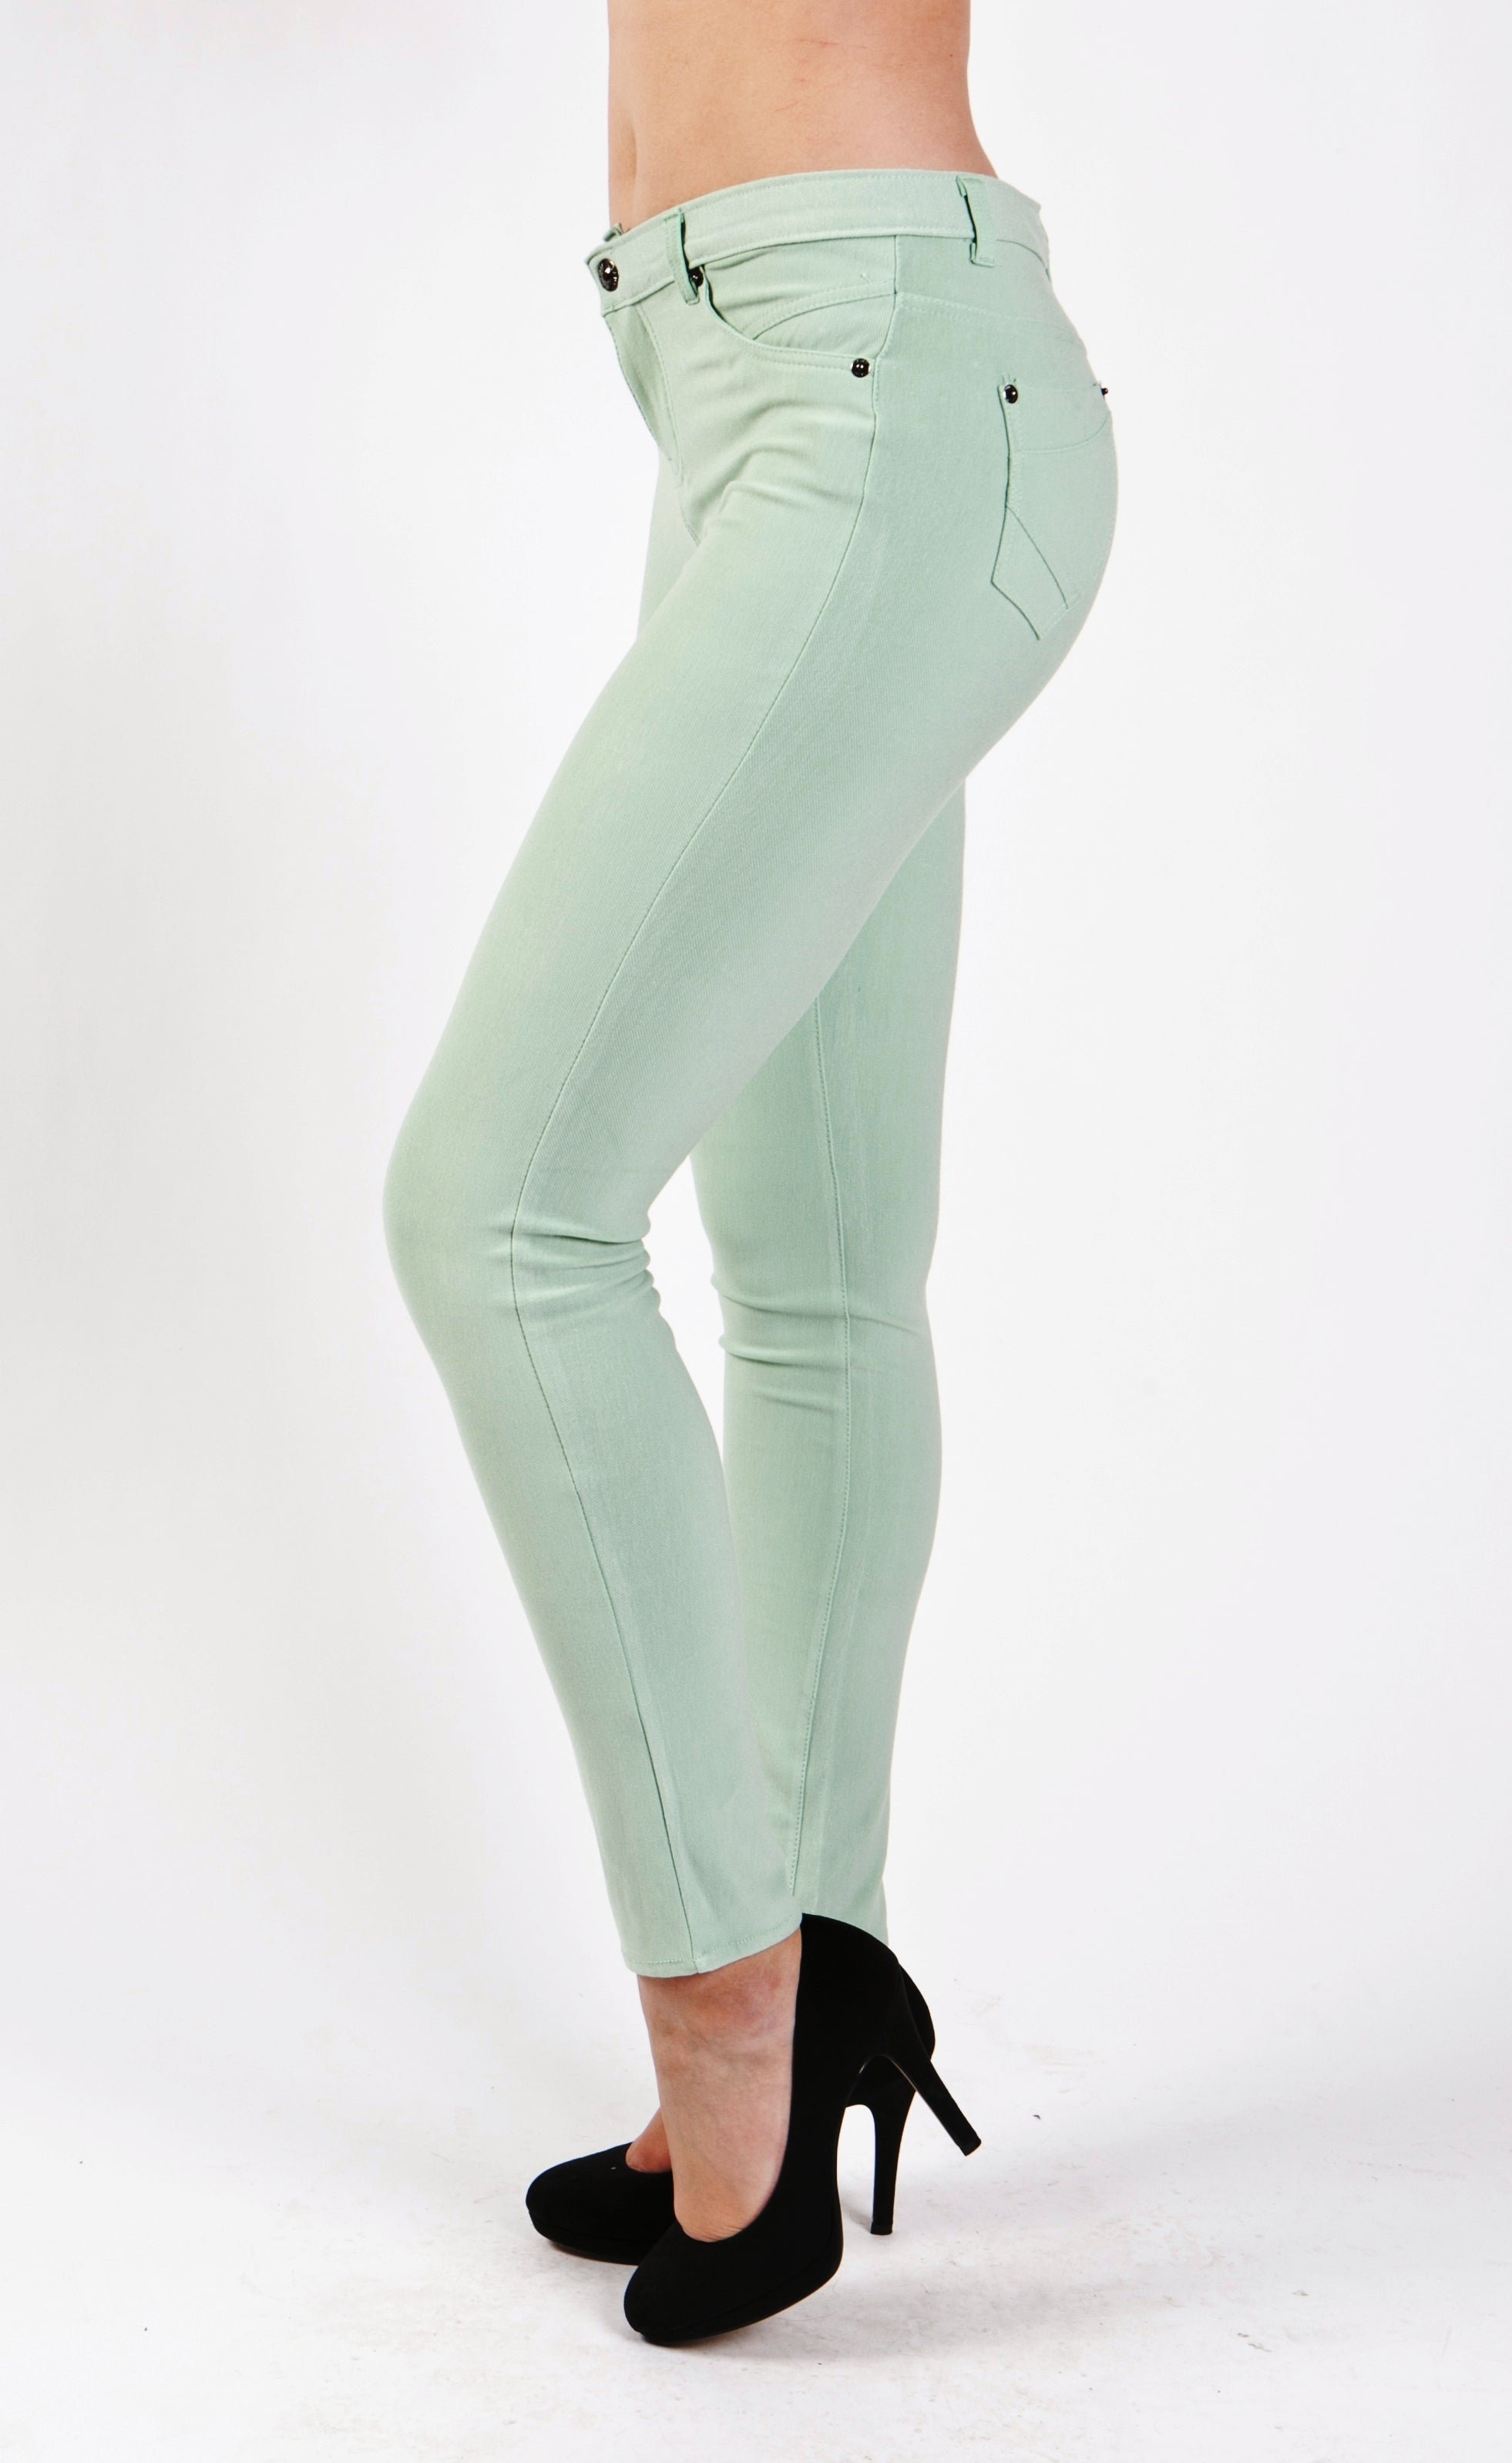 5 Pocket Slim Fit Skinny Pants-Mint - Home Goods Galore